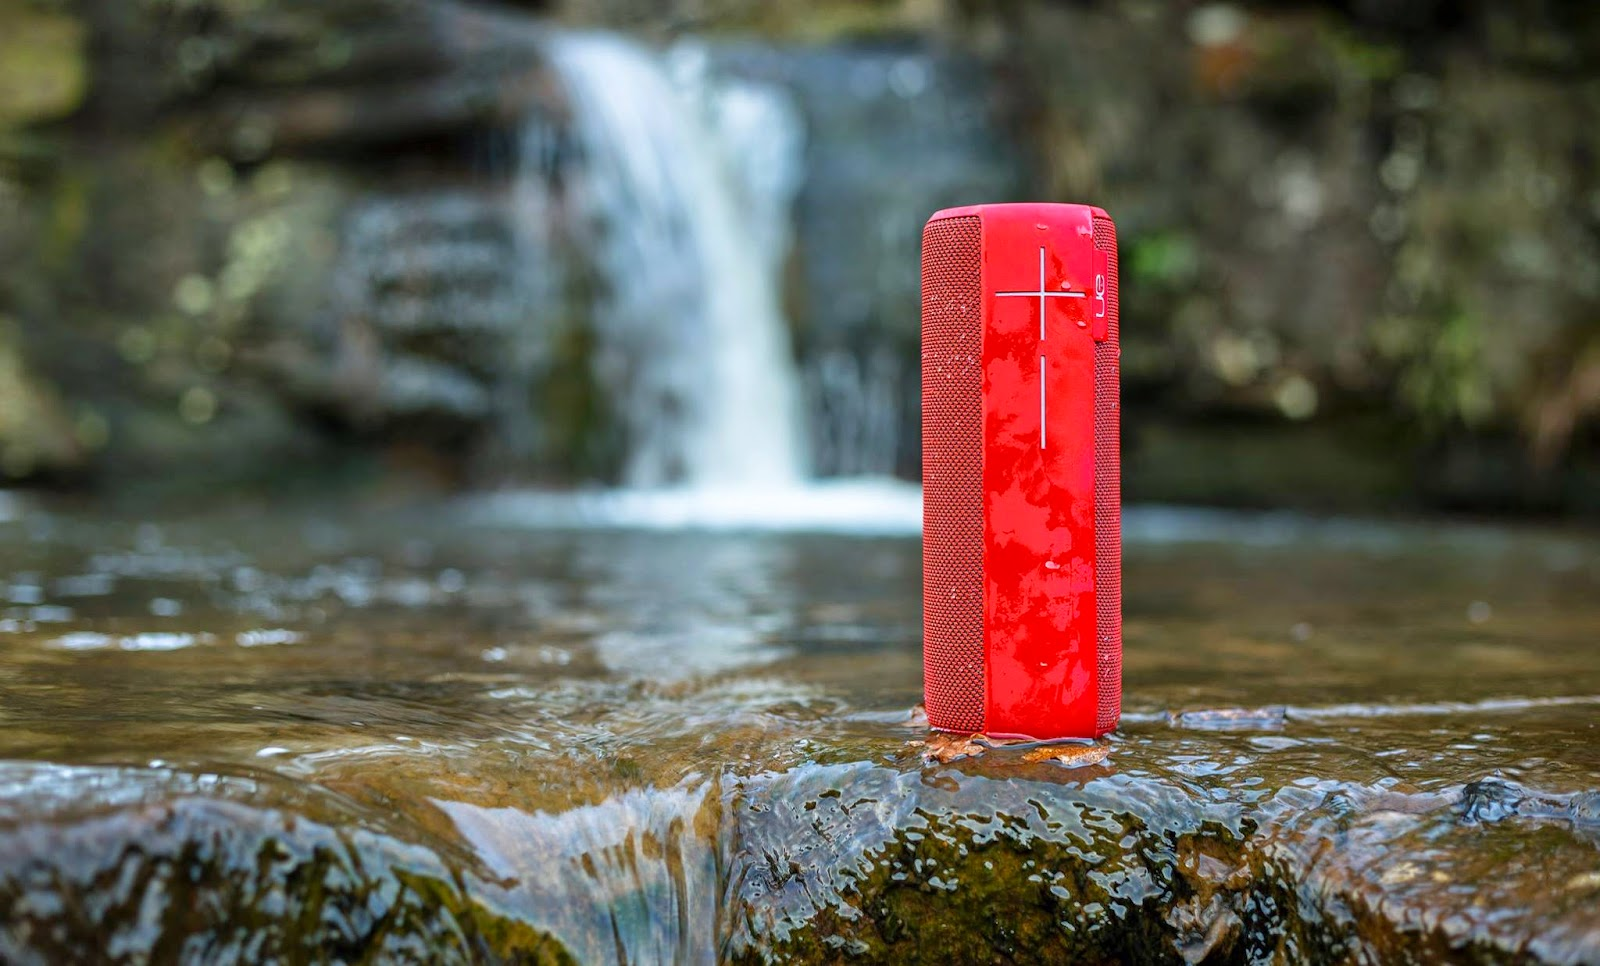 the UE Megaboom speaker. In a river.